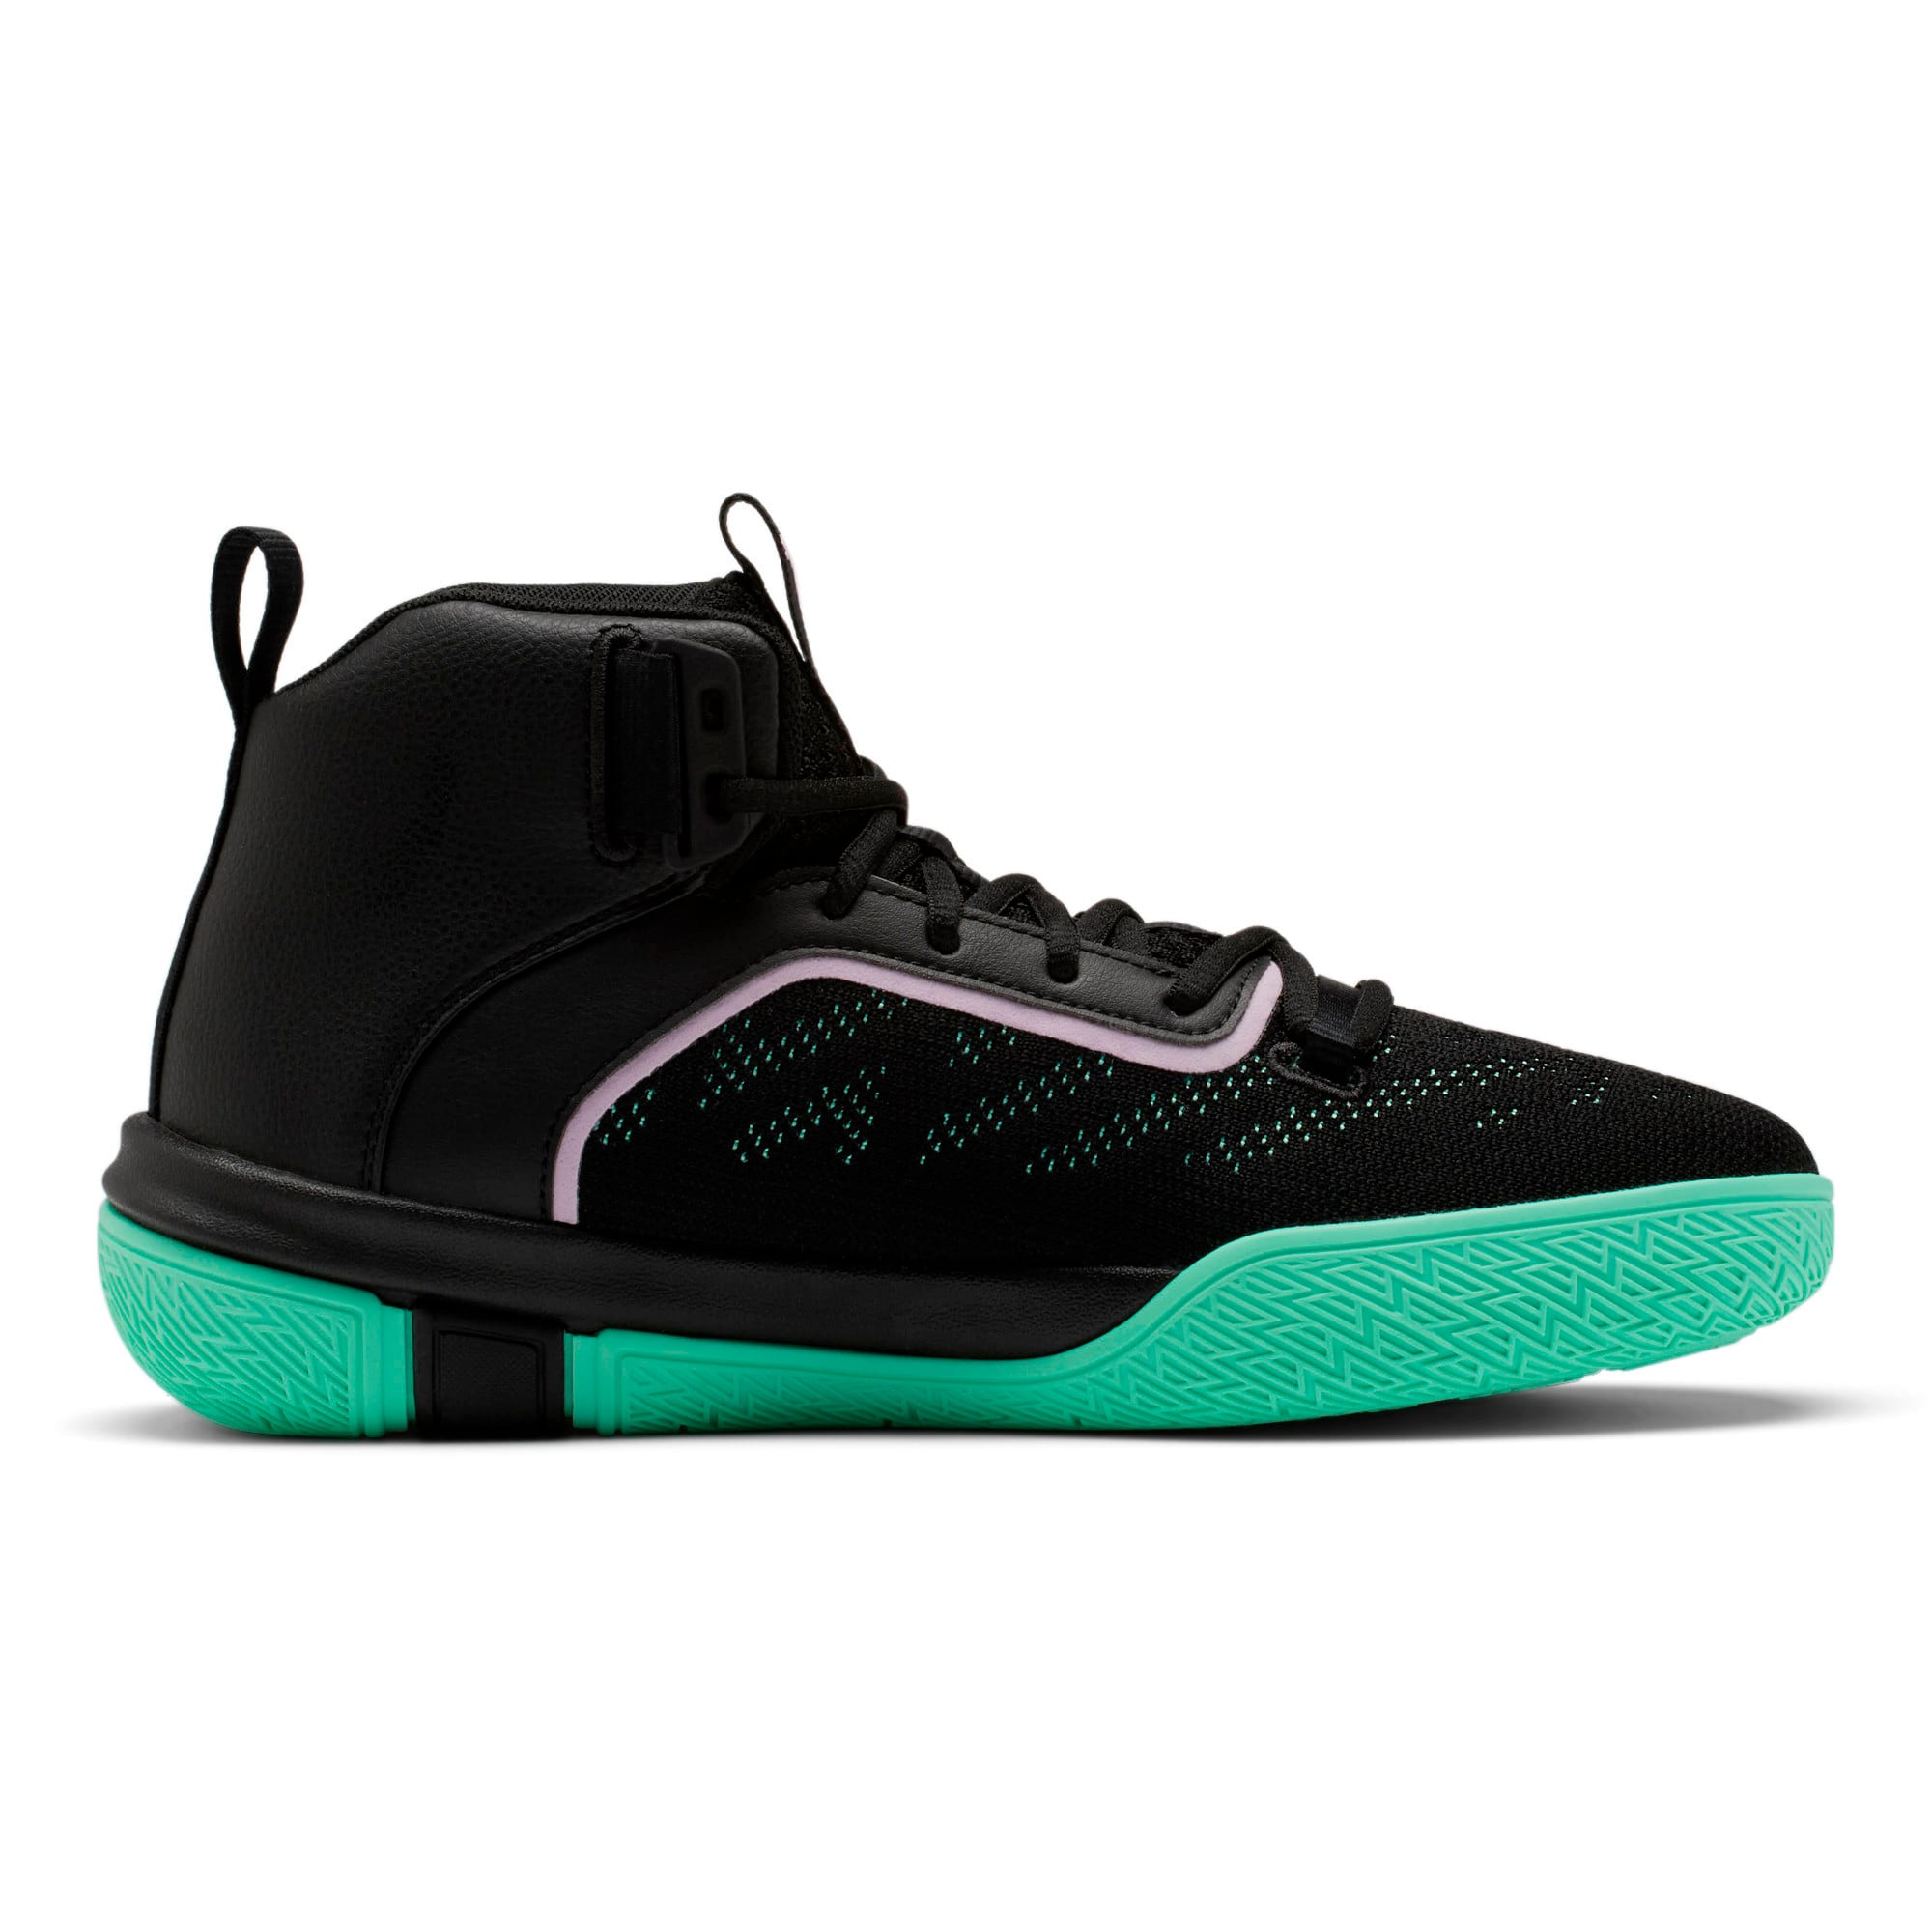 Thumbnail 5 of Legacy Dark Mode Basketball Shoes, Puma Black-Orchid Bloom, medium